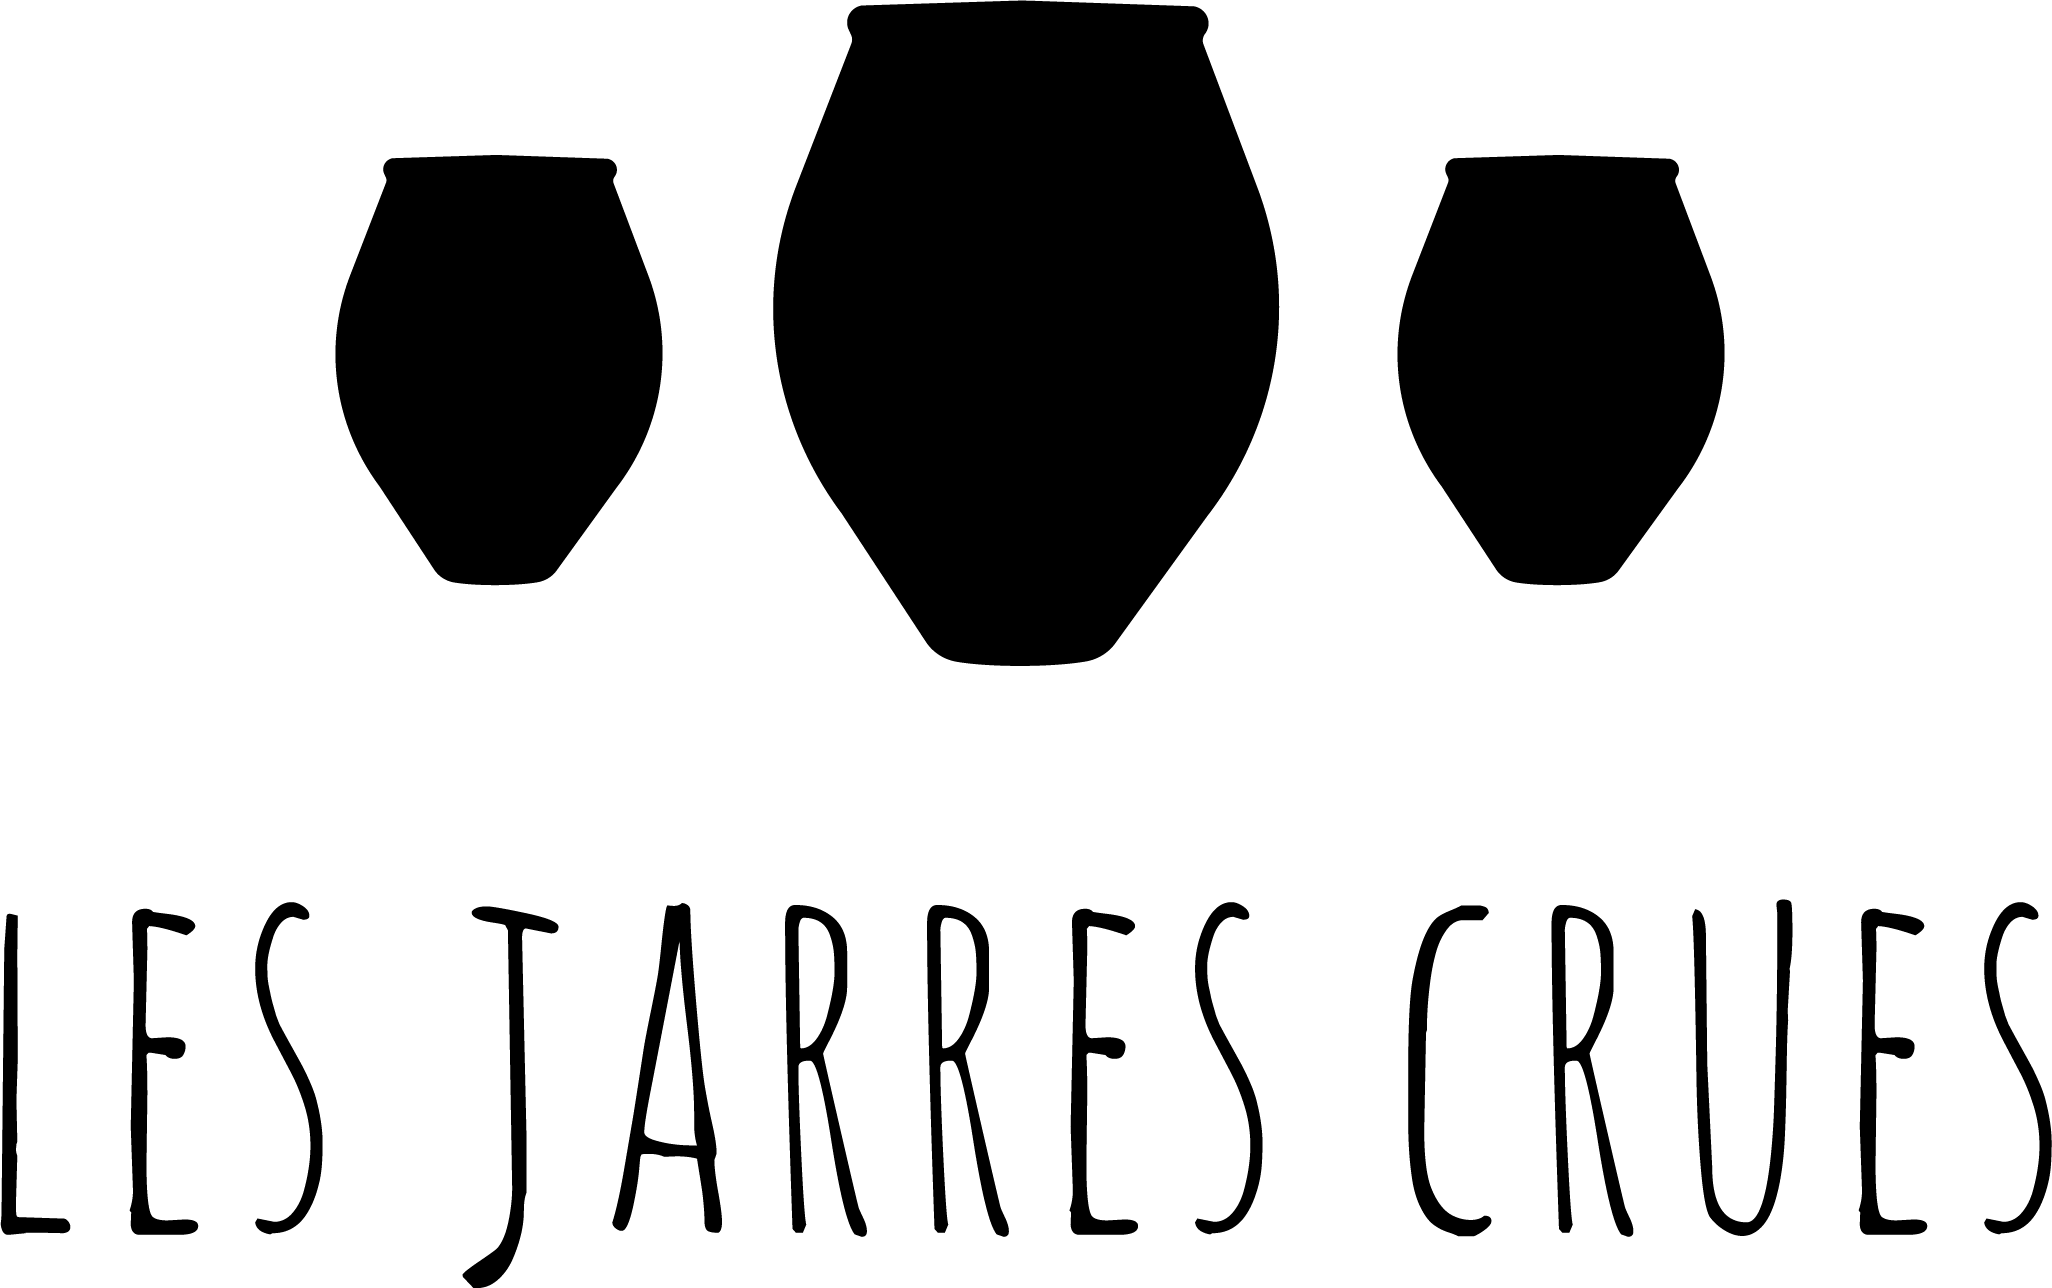 Les Jarres Crues, Fermentation naturelle